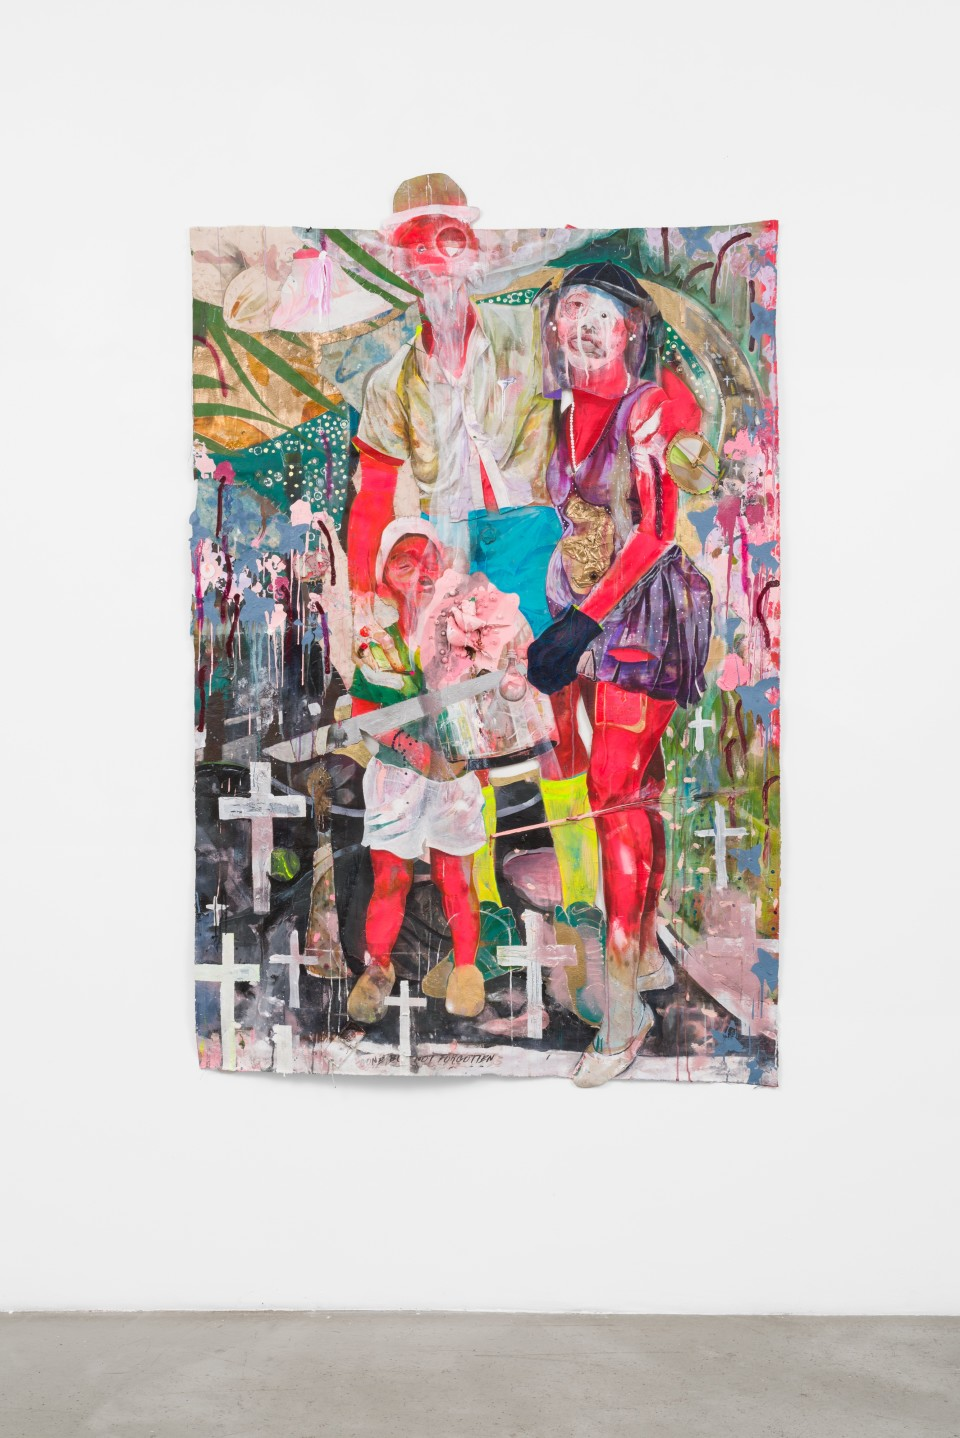 Image: Lavar Munroe  FAITH HOPE & LOVE, 2020  signed verso  acrylic, spray paint, mirror, beads, doll, faux birds, plastic and staples on canvas  78 x 51 1/2 inches (198.1 x 130.8 cm)